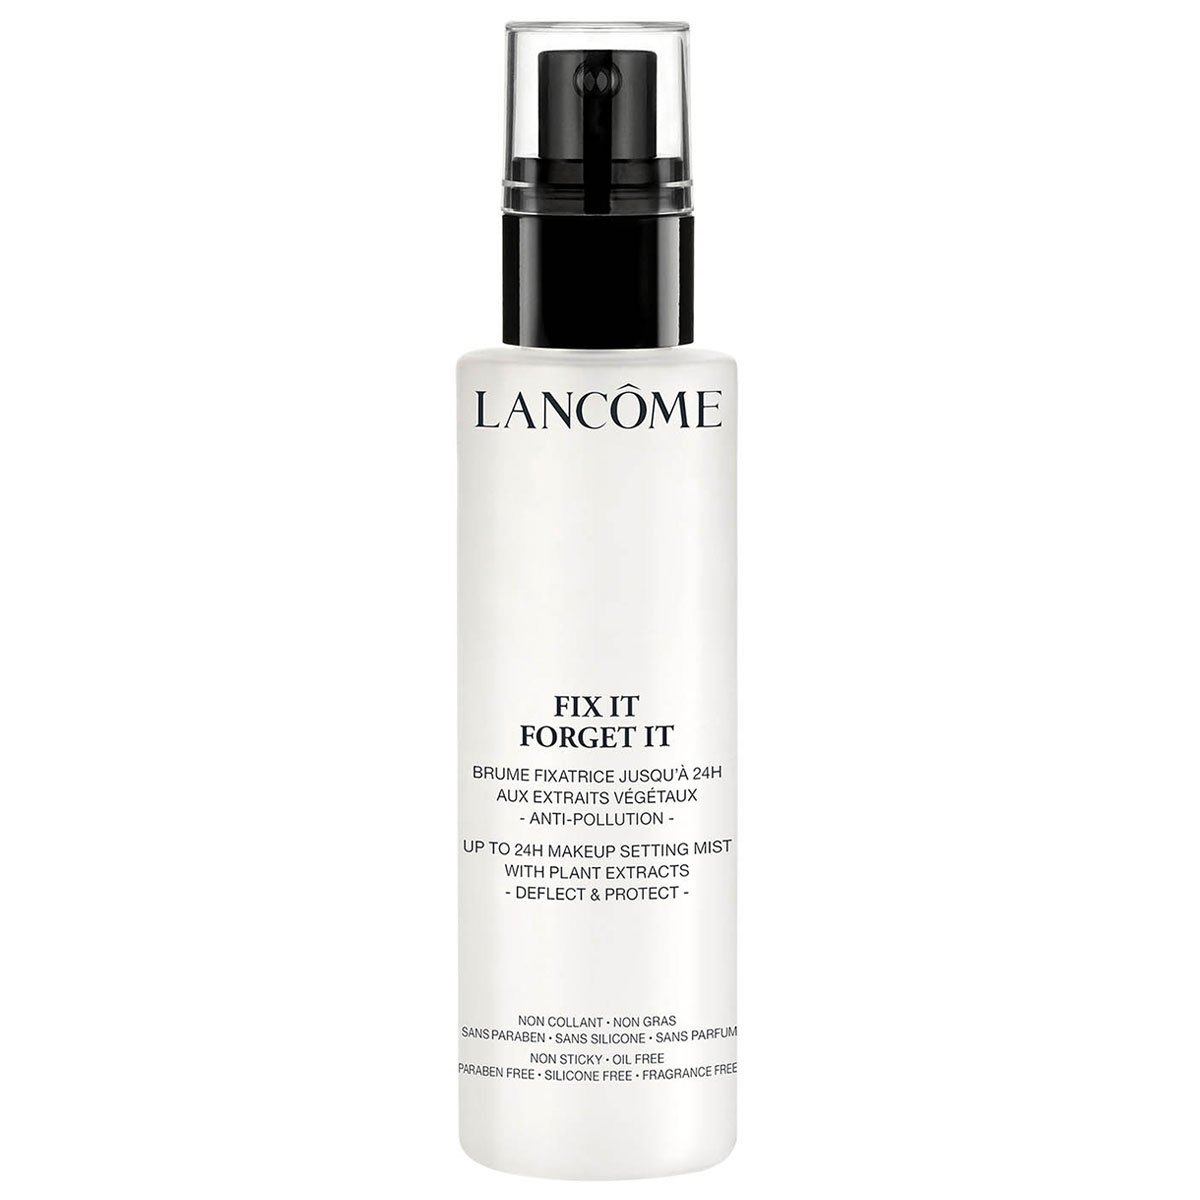 Fix it Forget it Brume fixatrice - Lancôme